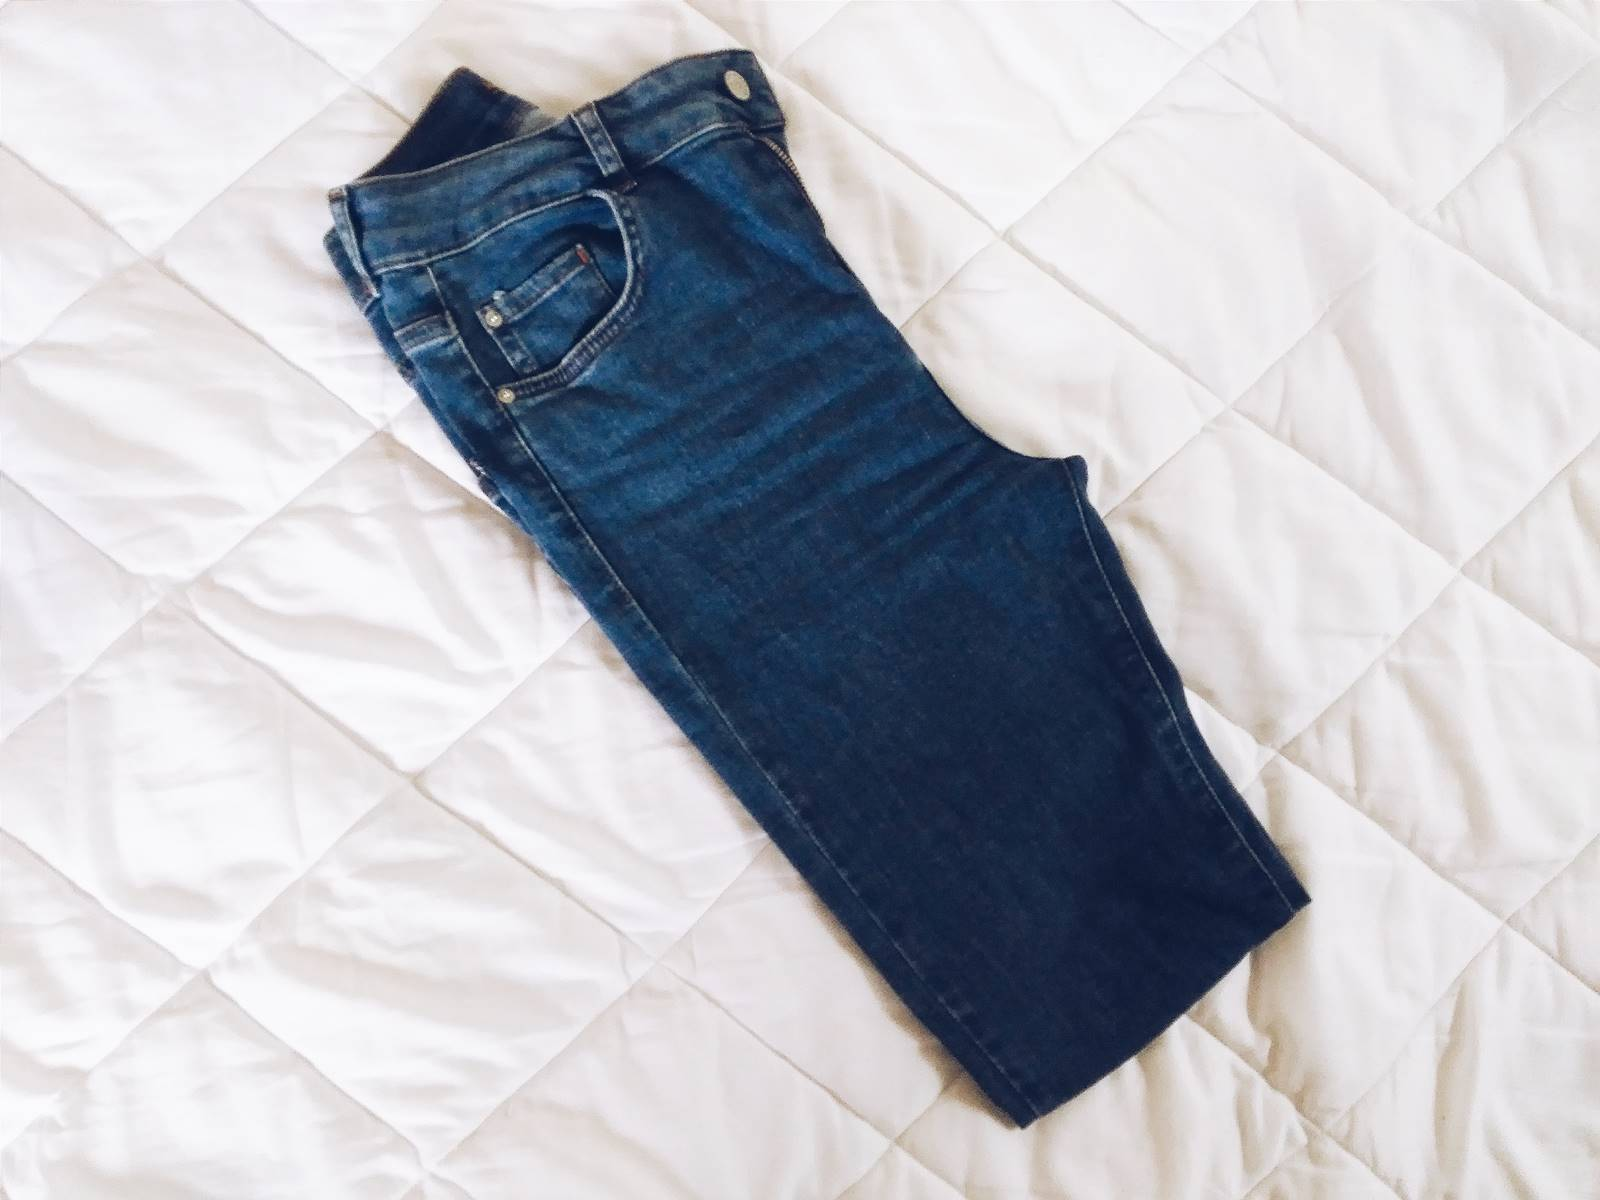 new in | High waisted jeans